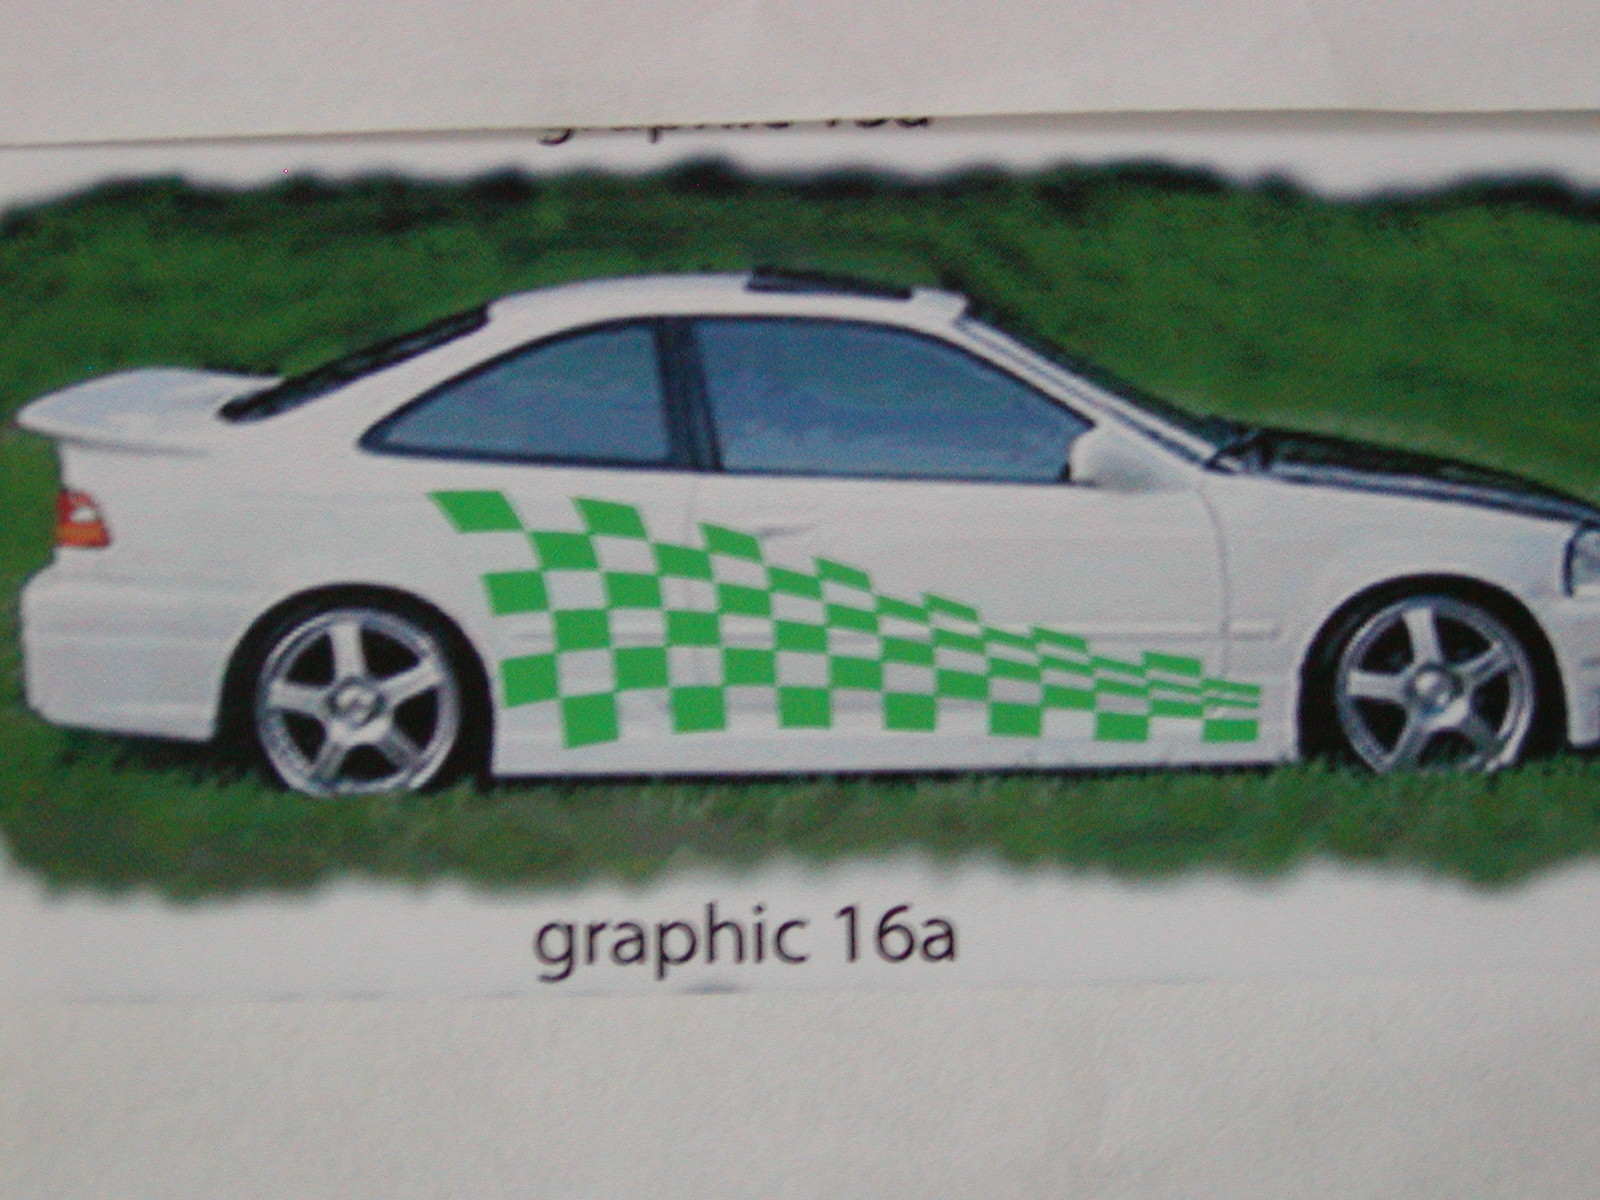 "Check Racing Graphics 16a Size 22"" x 78"""